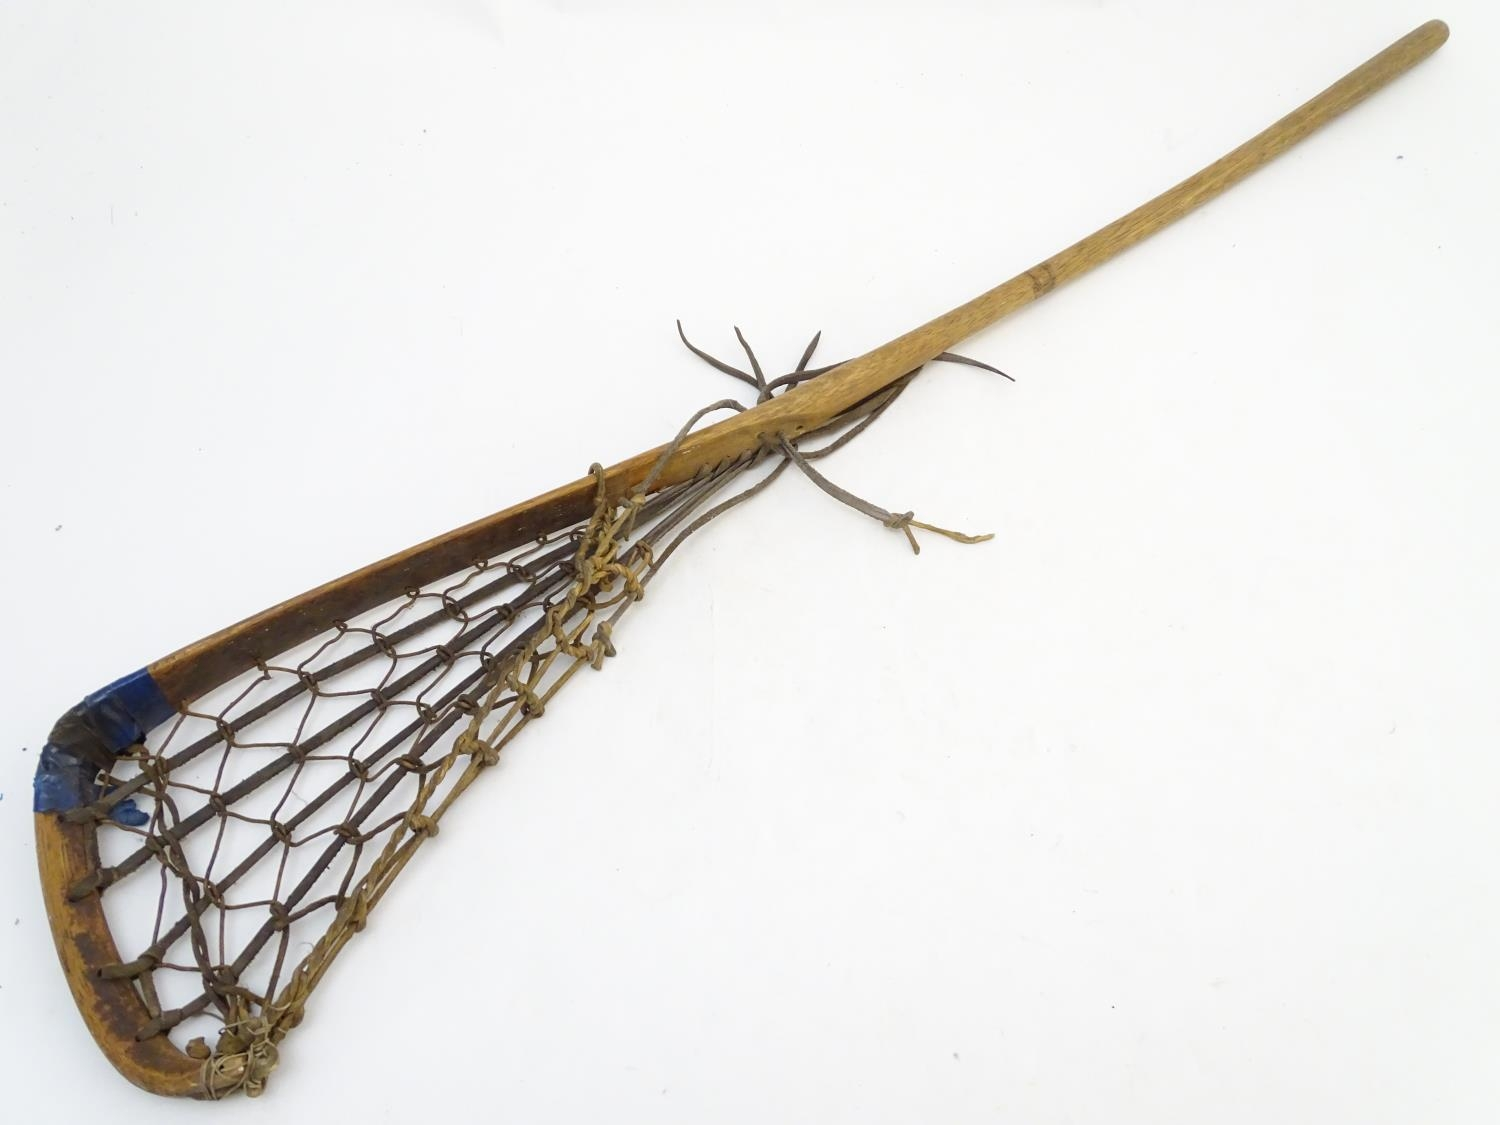 A Hattersley & Son wooden lacrosse stick / crosse, marked with maker and model Viktoria No. 1 to - Image 3 of 5